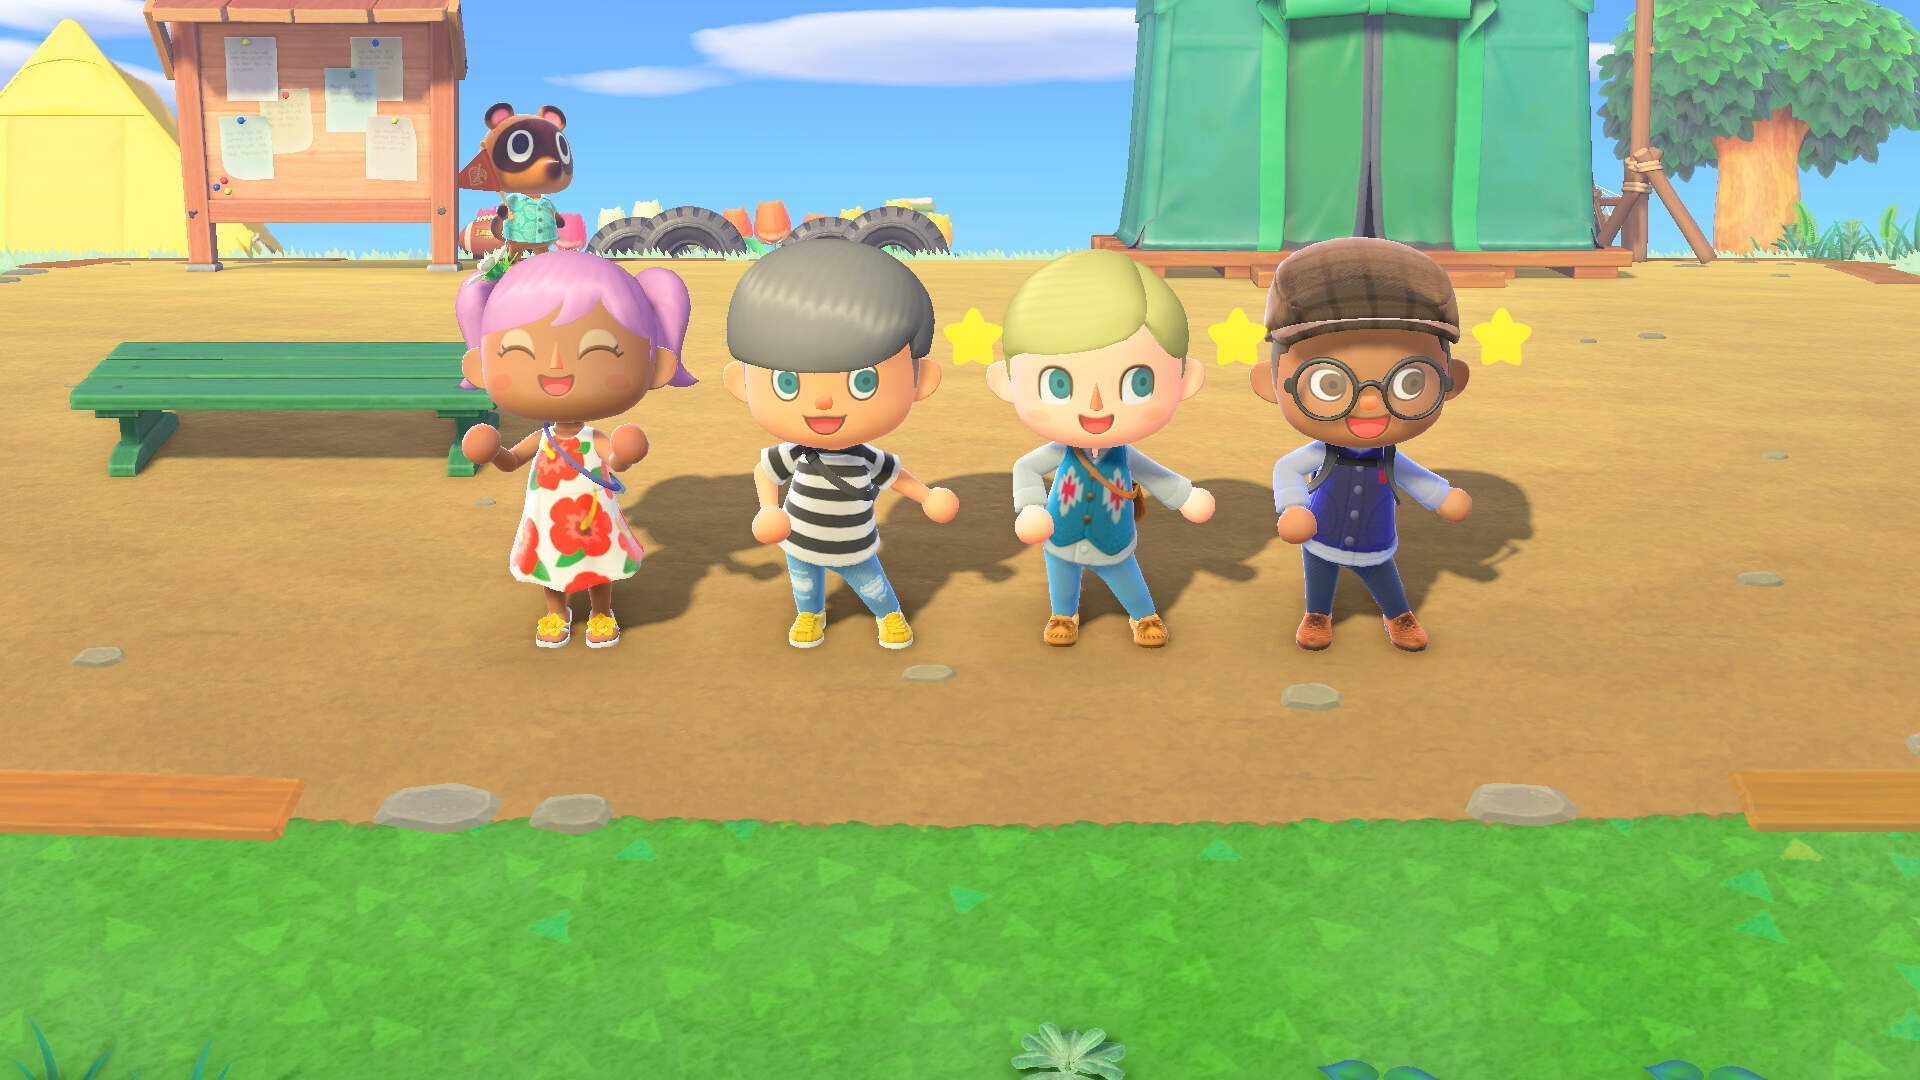 Animal Crossing New Horizons: Character Customization and How to Change Your Appearance